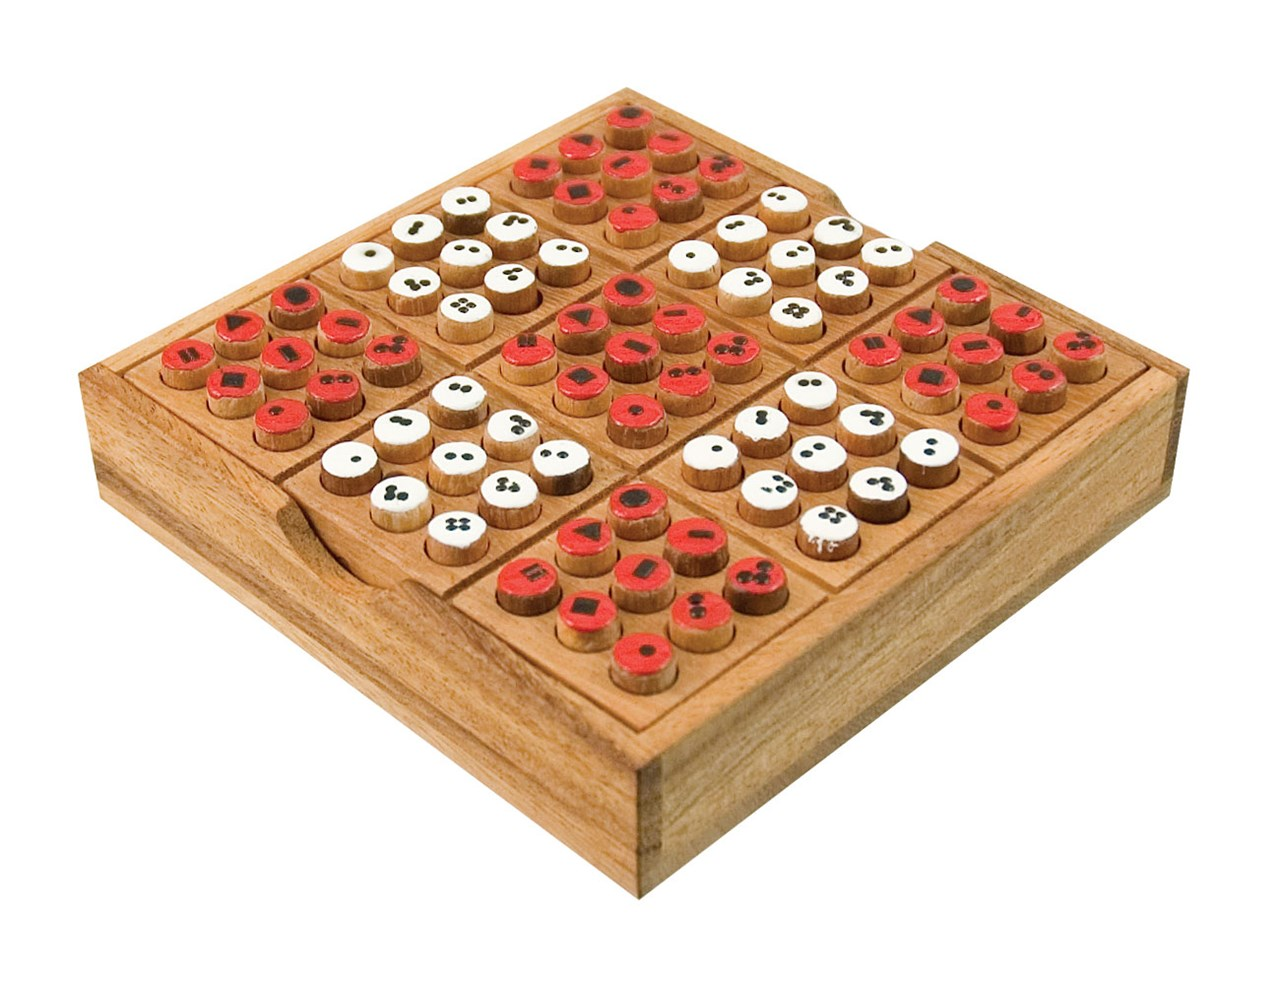 wooden logic number puzzle